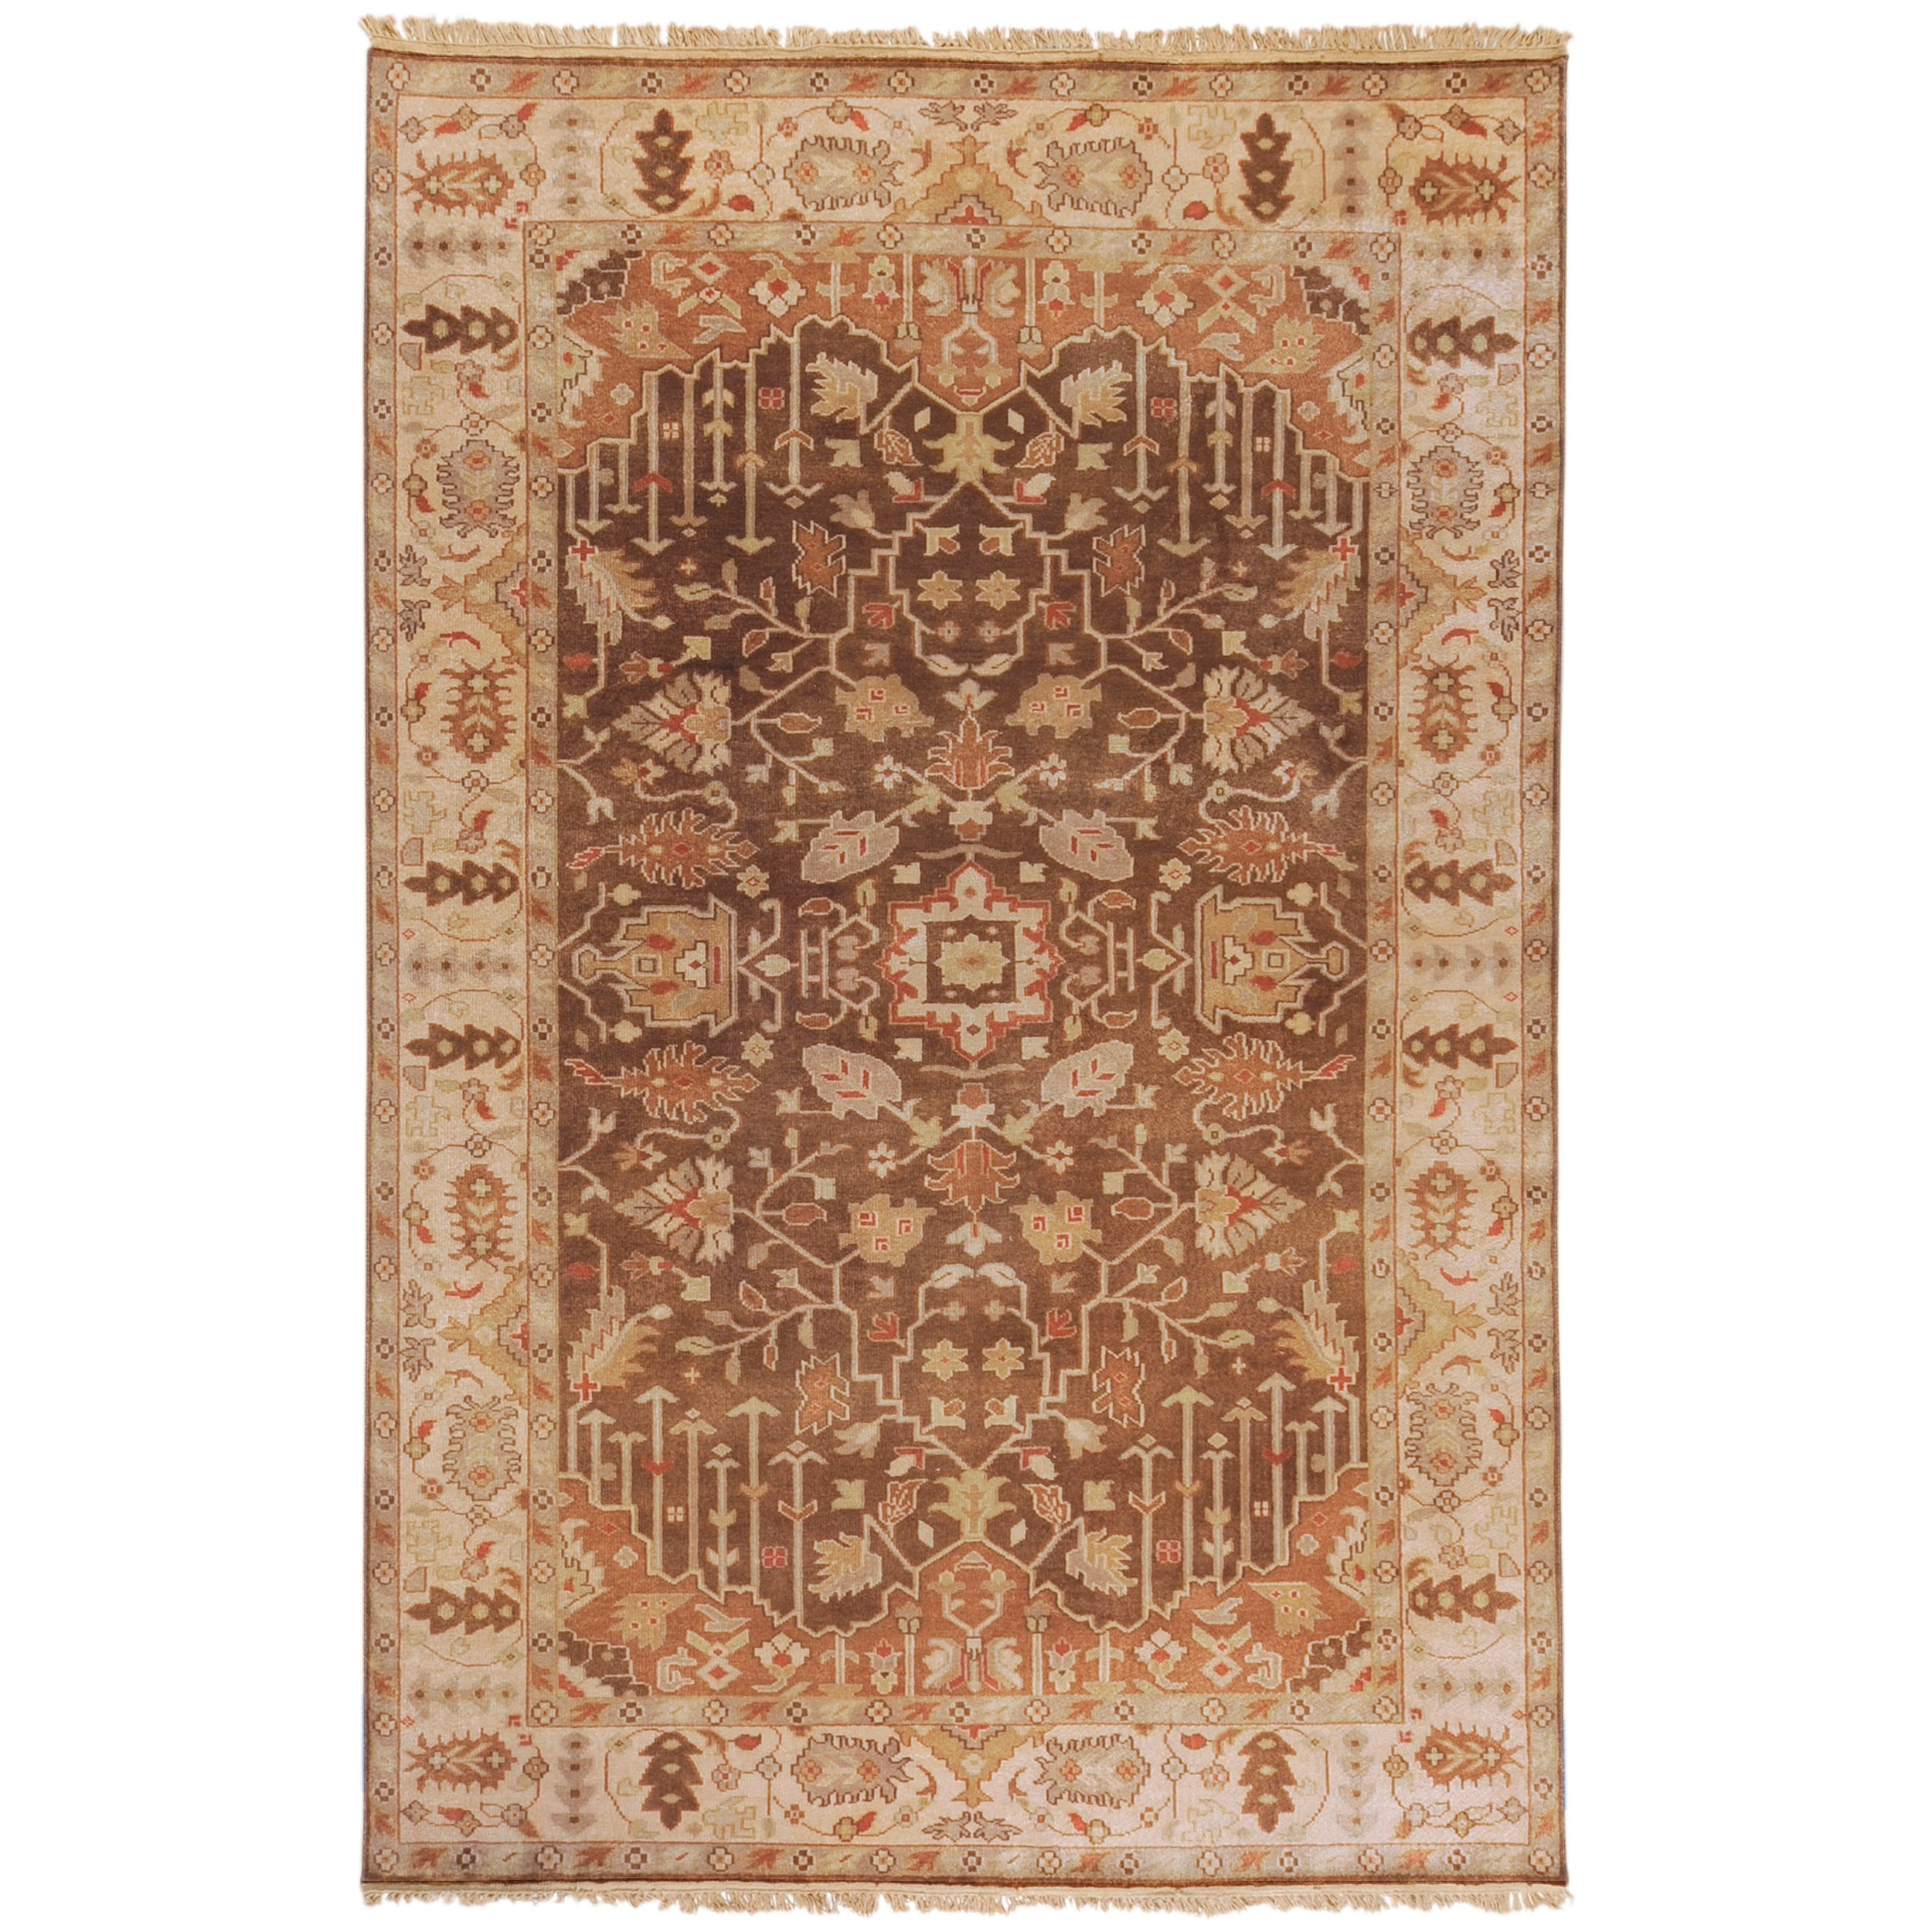 Hand-knotted Brown Itemide Semi-Worsted New Zealand Wool Area Rug - 8' x 11'